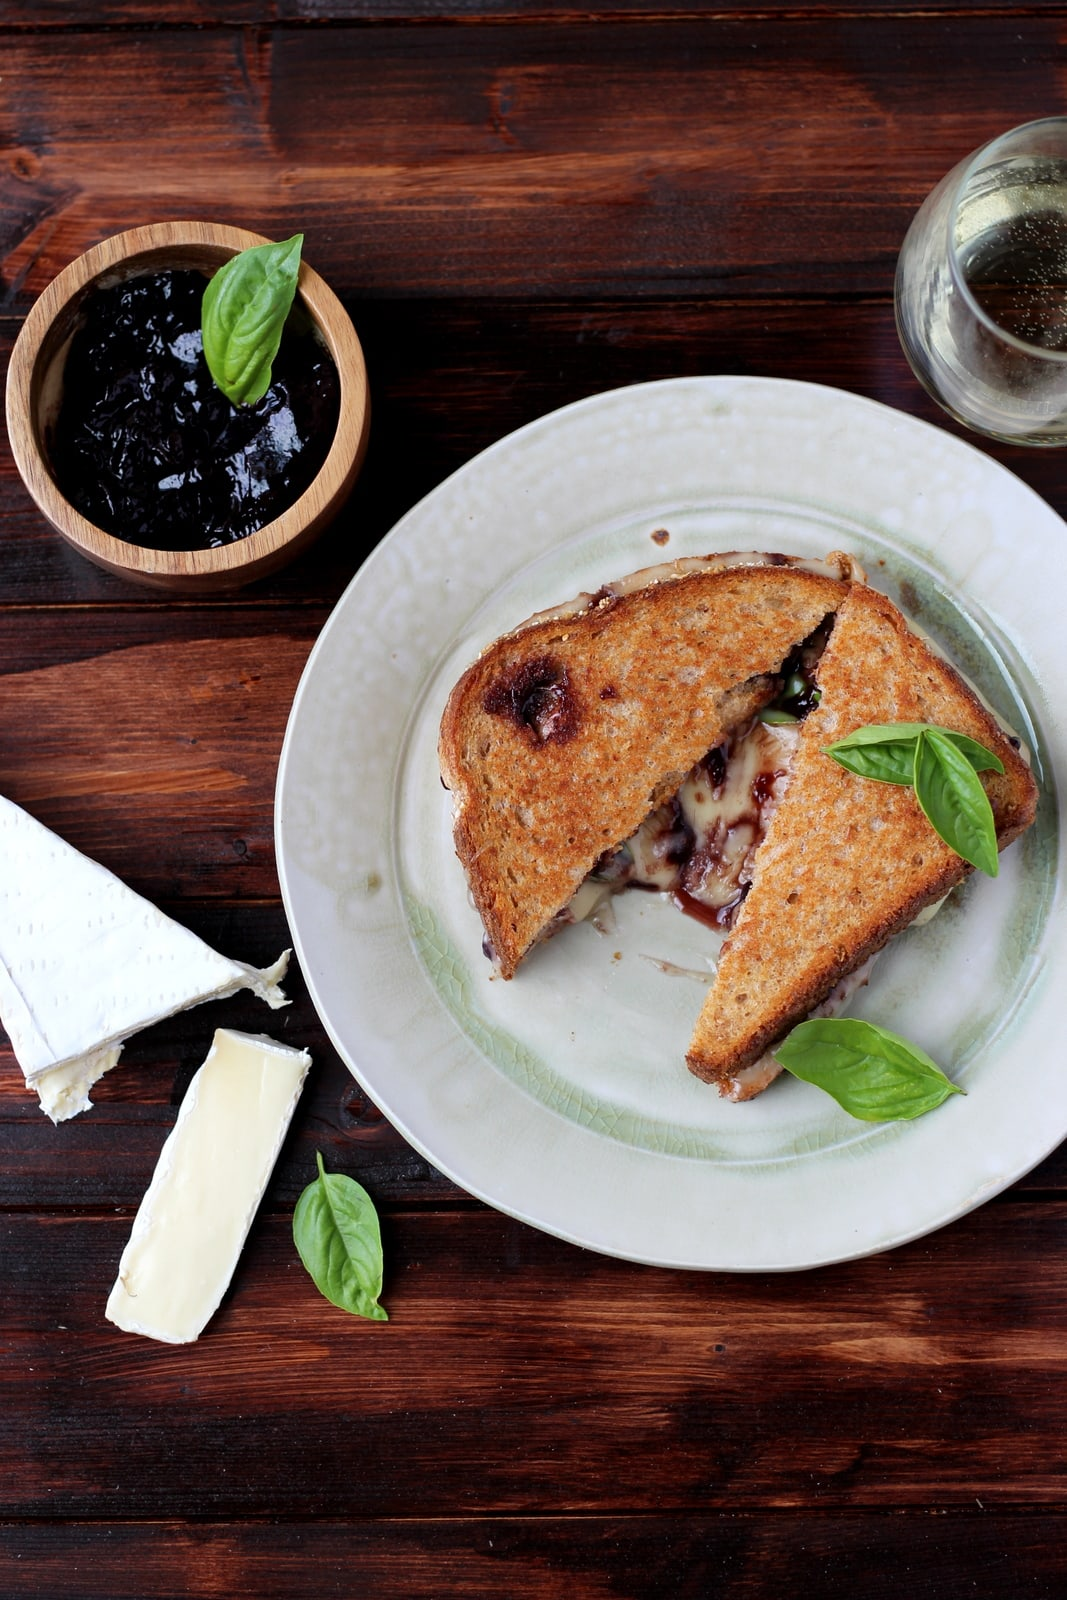 baked brie grilled cheese with sweet basil and boysenberry